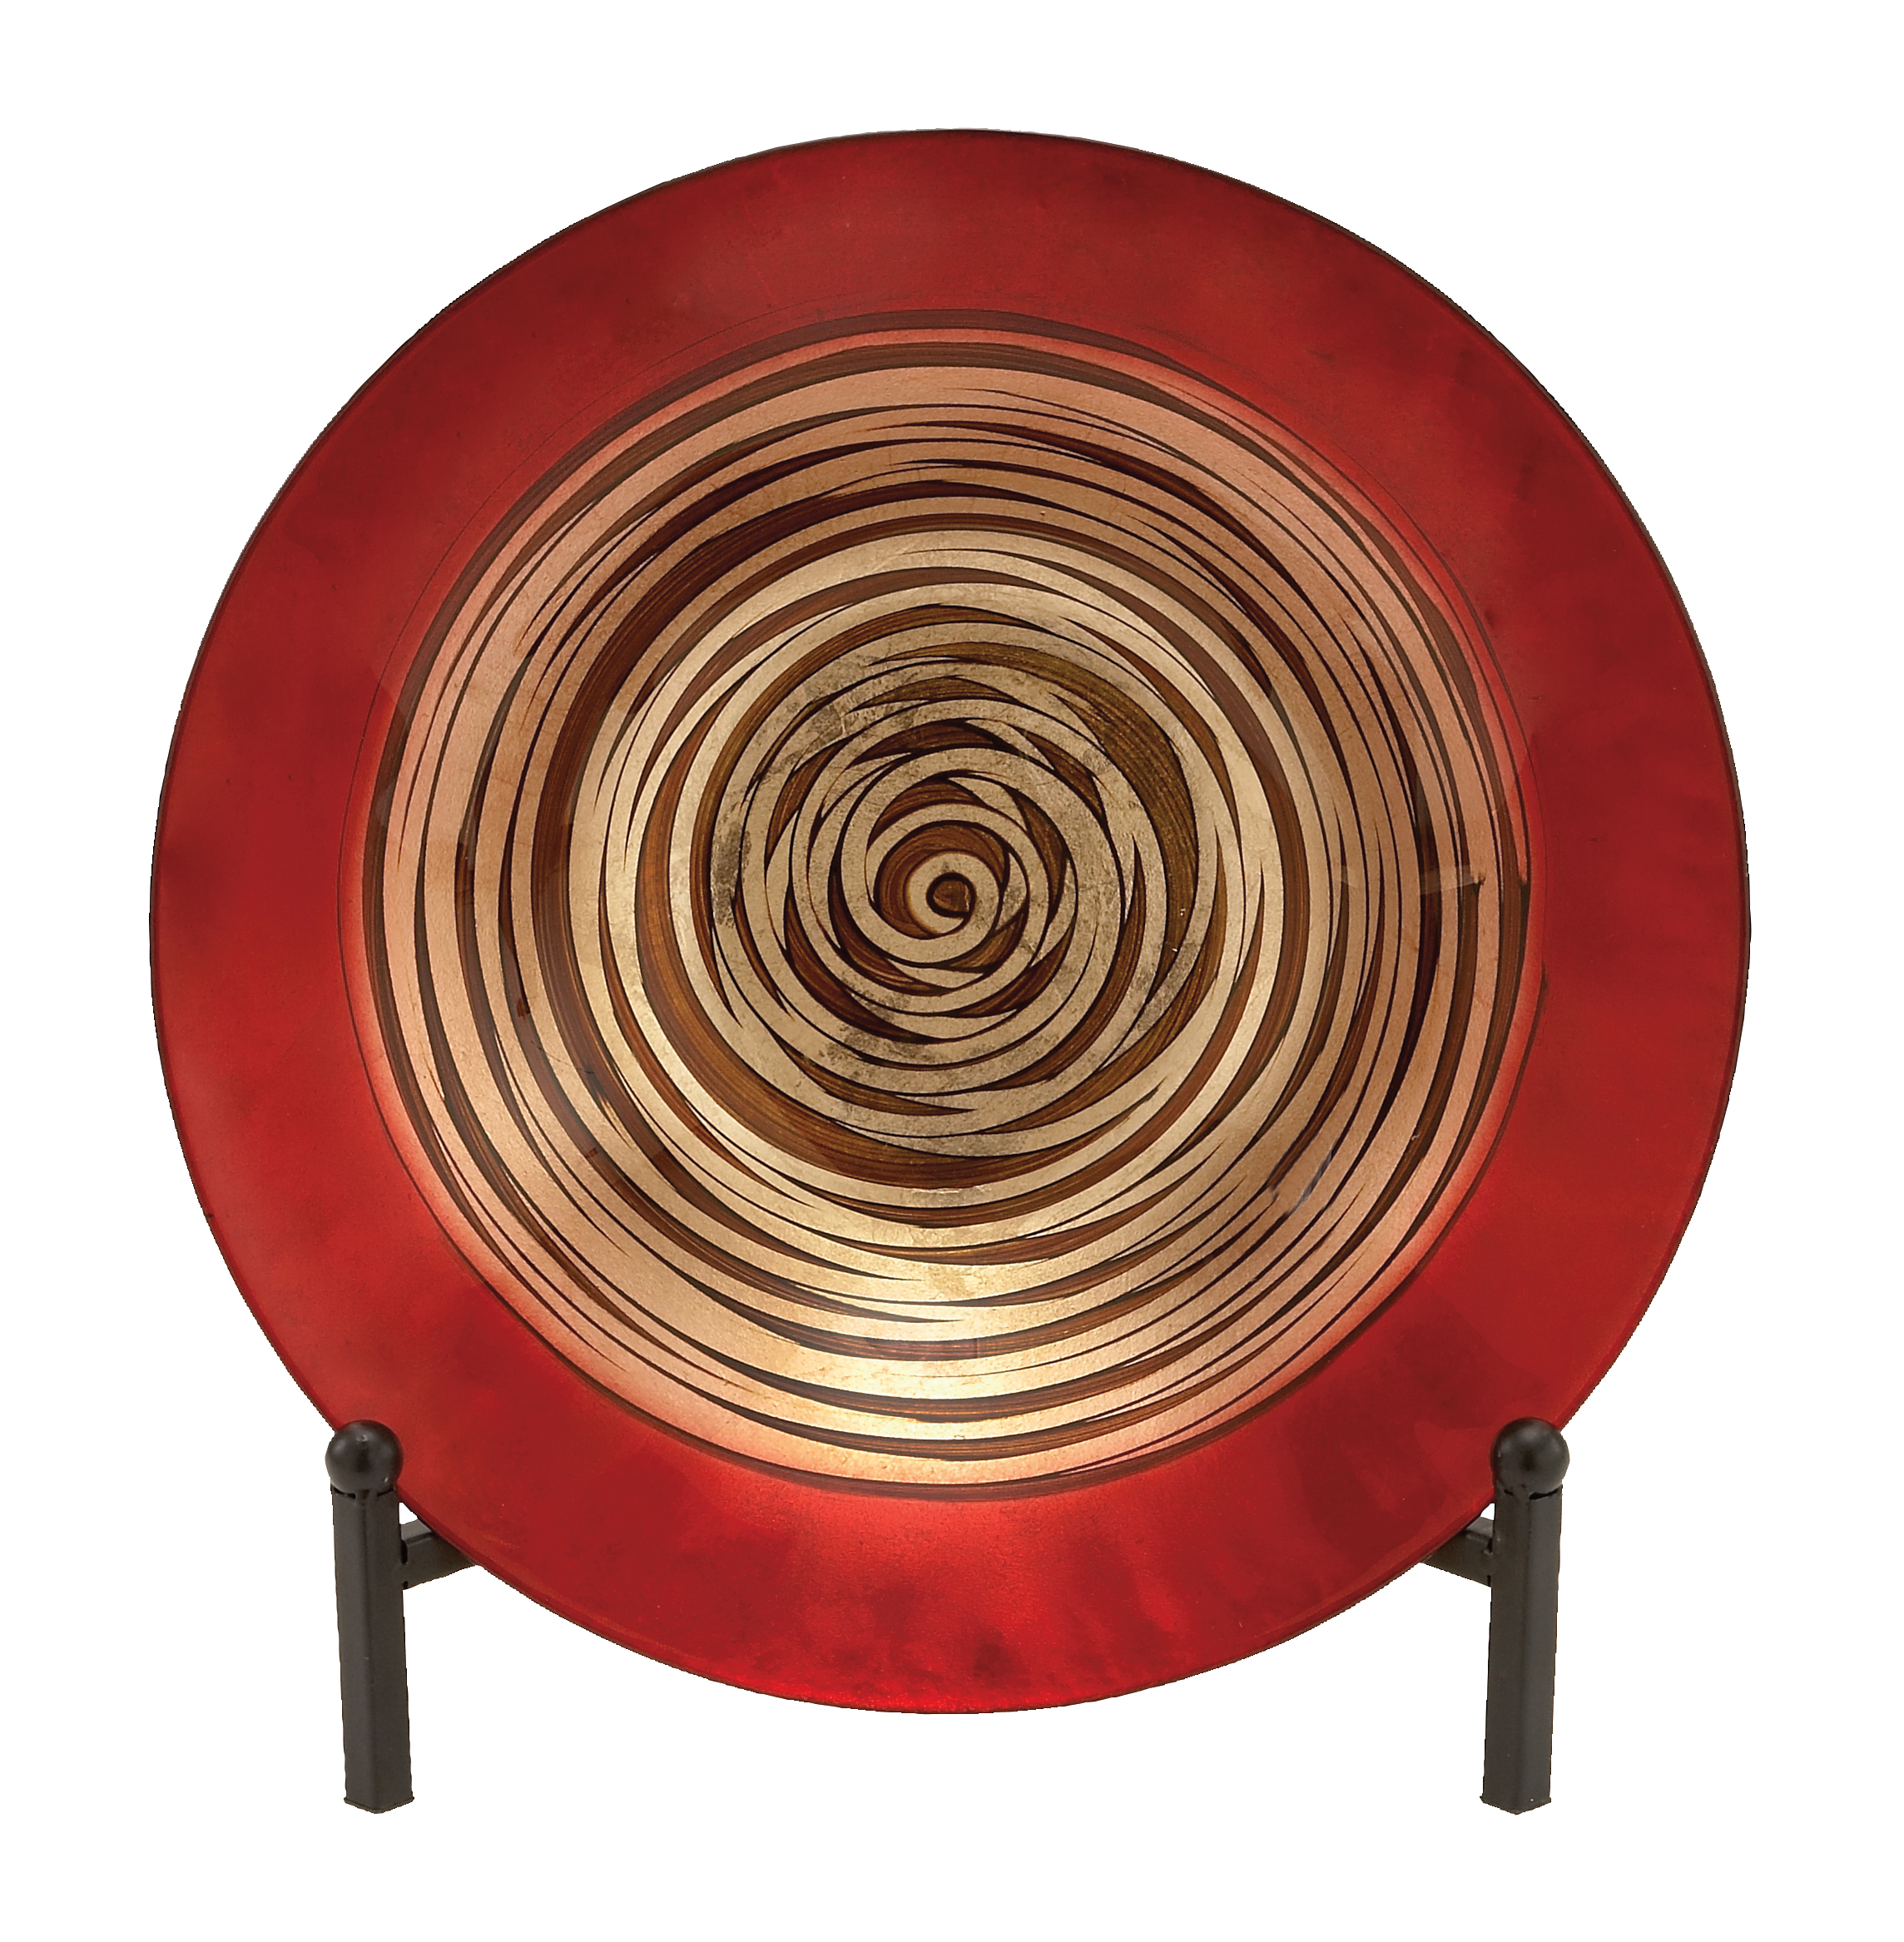 Decmode Contemporary 15 Inch Geometric Spiral Glass Bowl with Easel